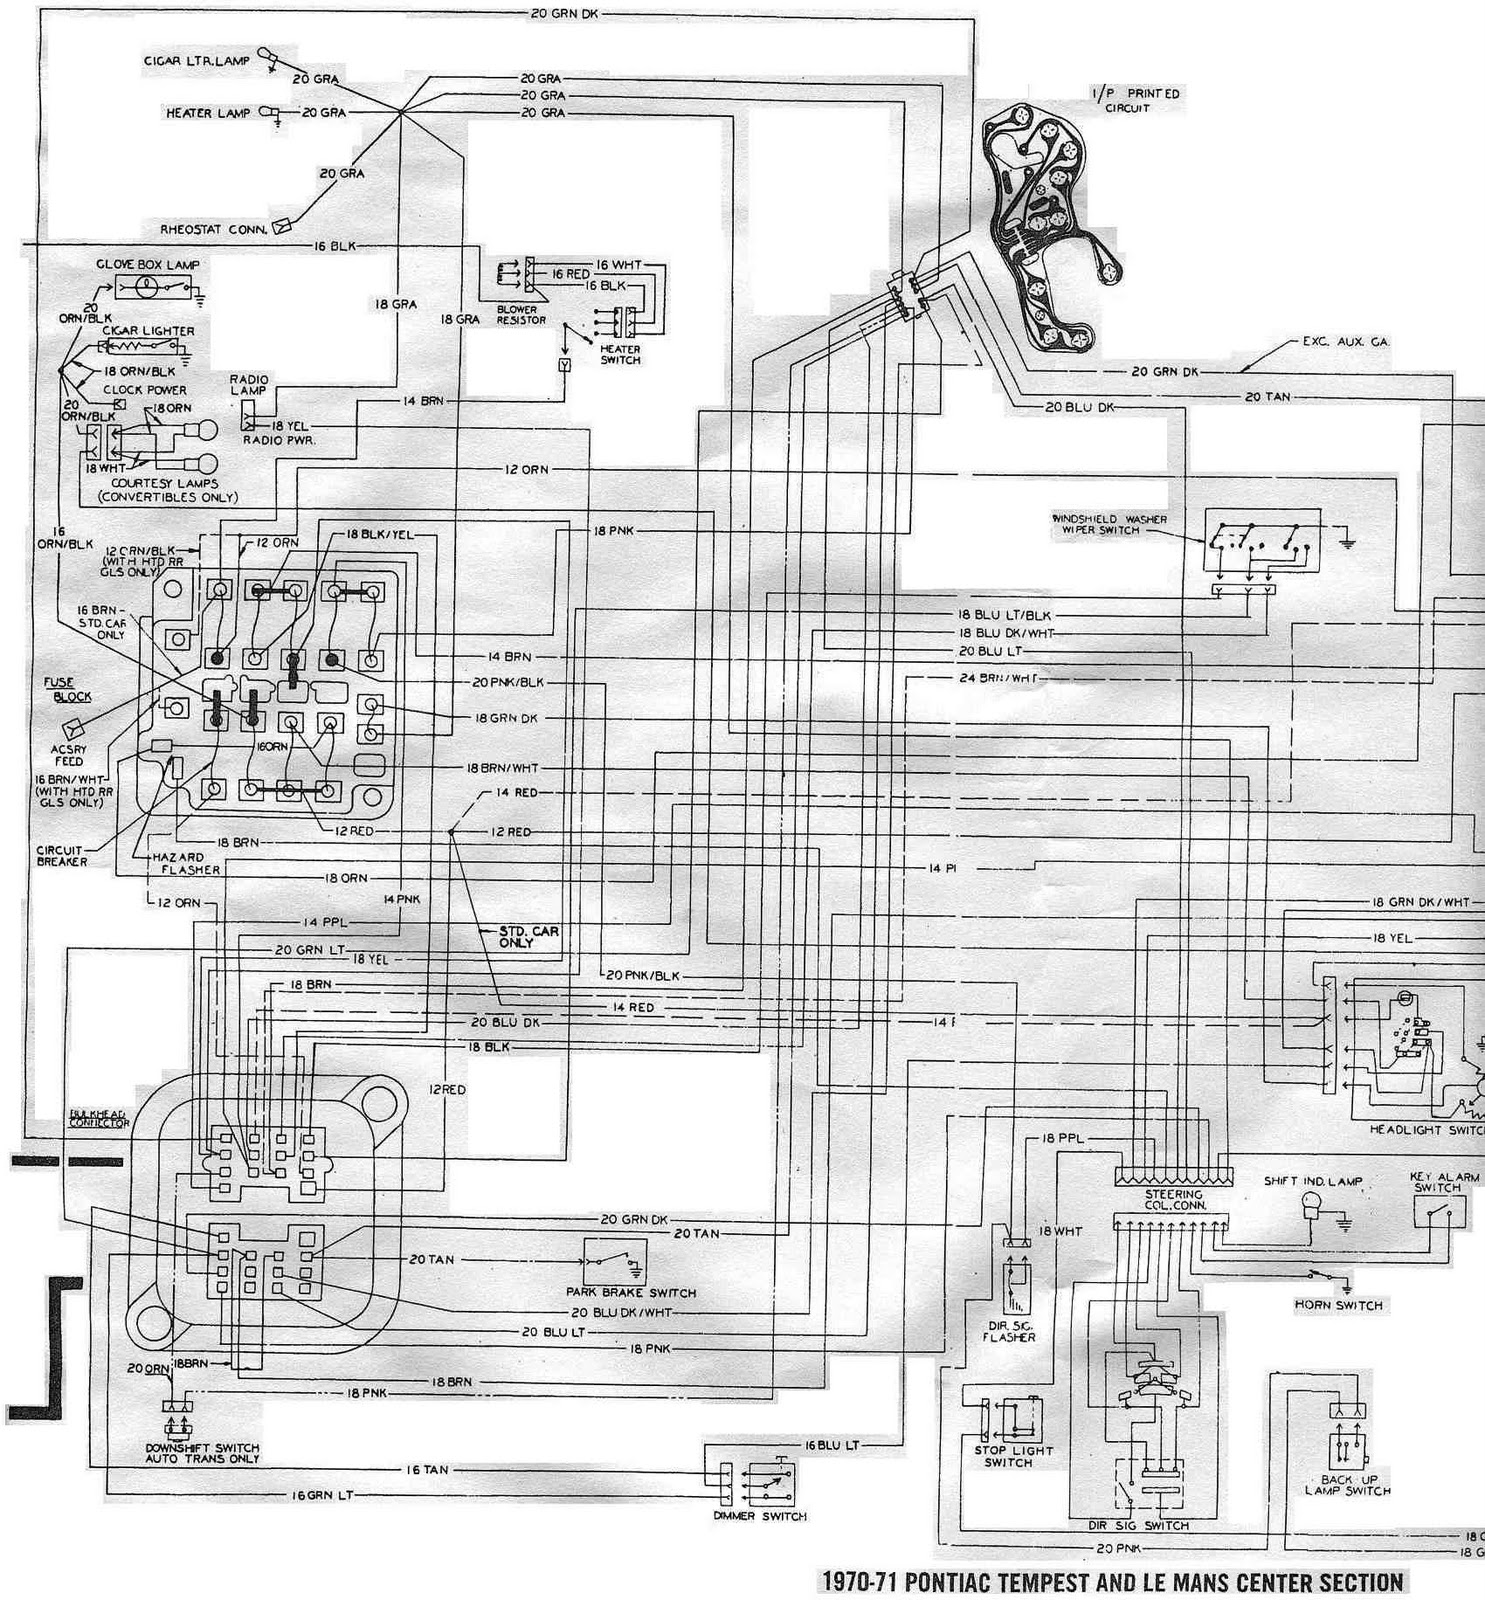 67 Gto Wiring Diagram Easy Rules Of 68 Corvette Dash Free Download Tach Detailed Schematics Rh Mrskindsclass Com 1967